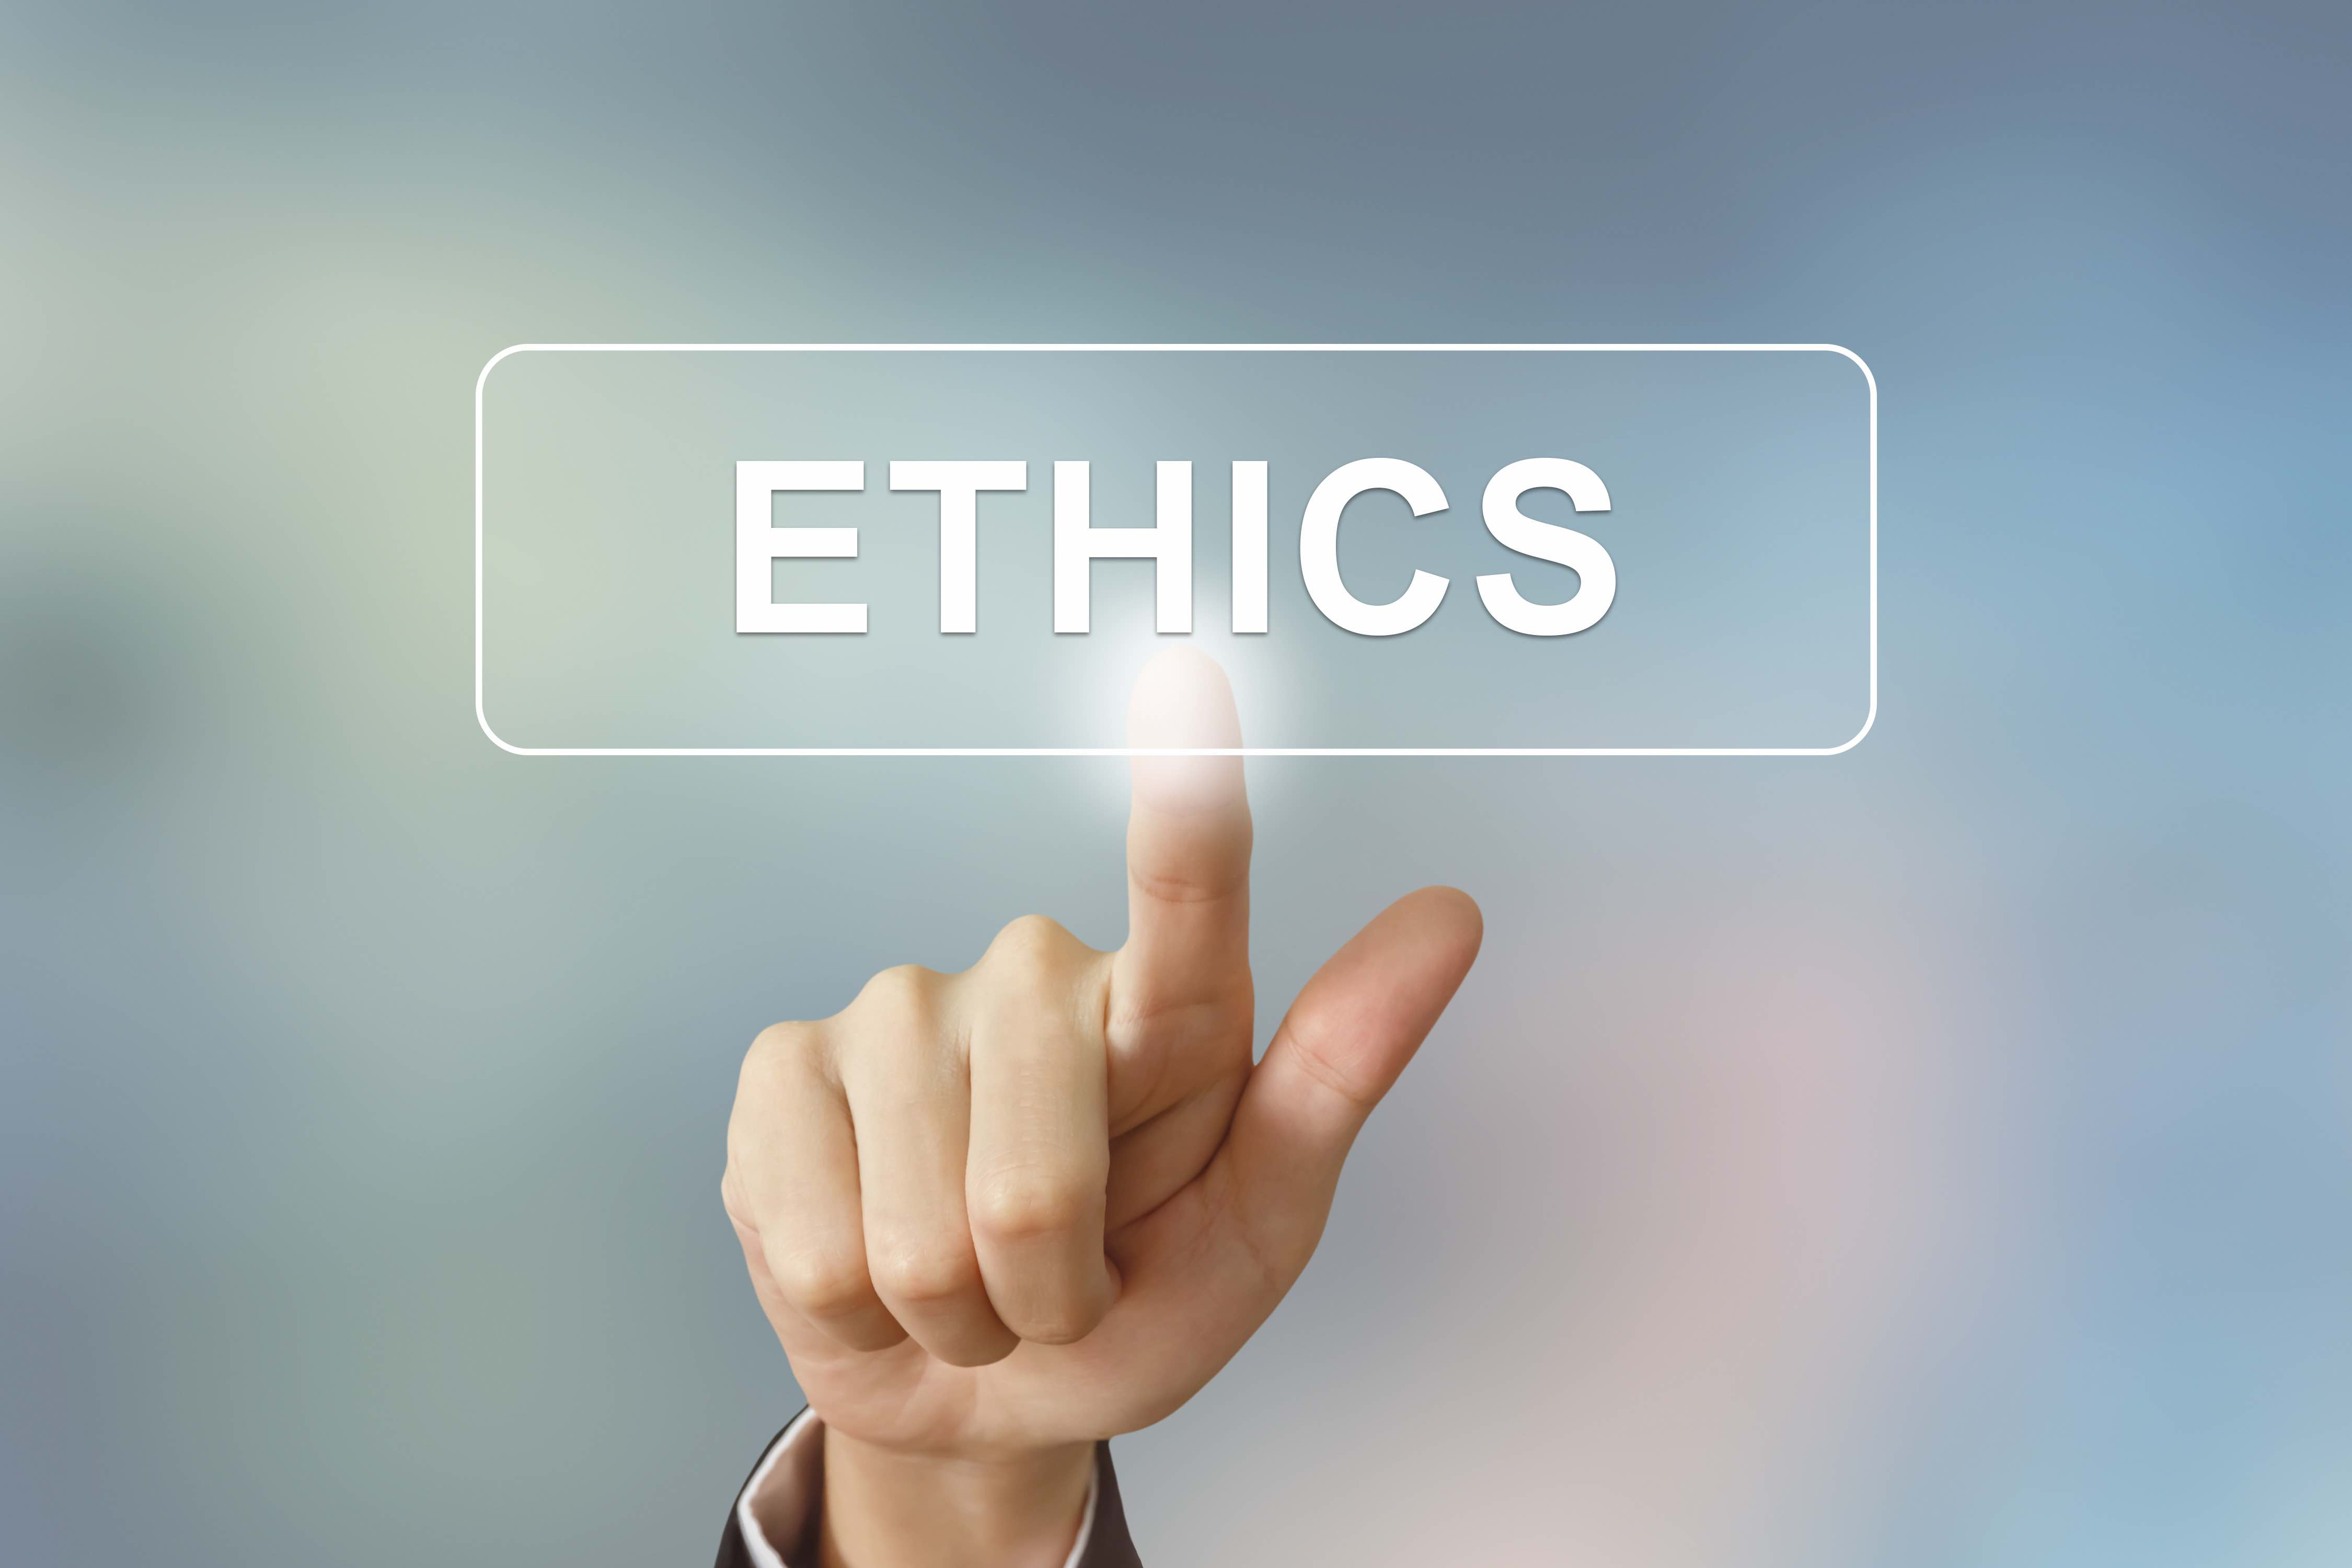 research_ethics_hand